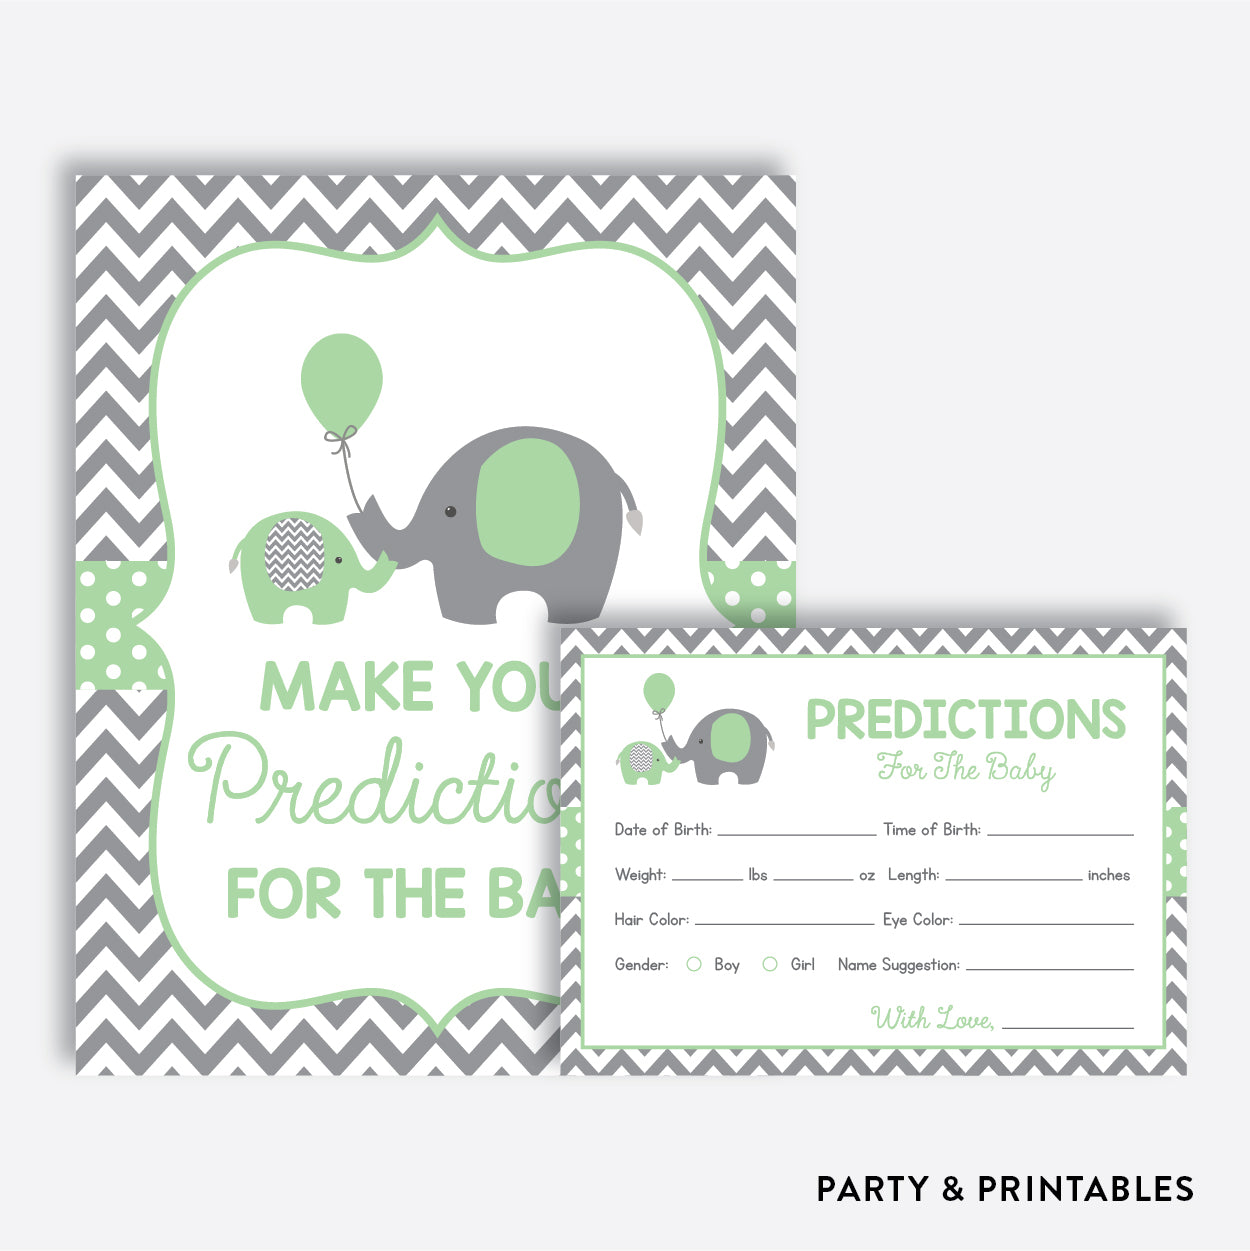 Elephant Predictions For The Baby / Non-Personalized / Instant Download (SBS.40), party printables - Party and Printables